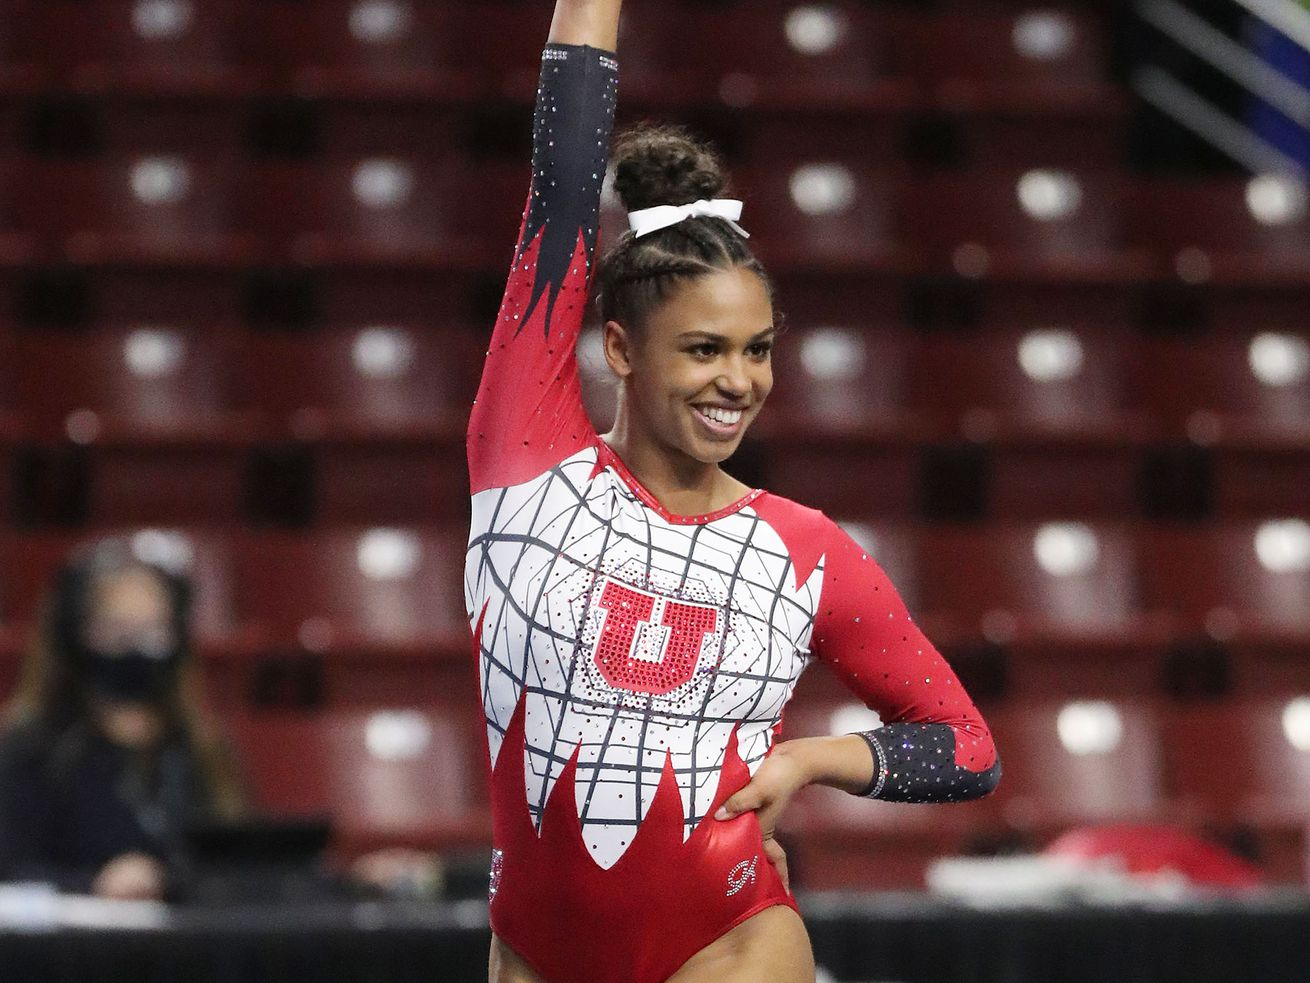 Utah's Jaedyn Rucker competes on the floor during the Pac-12 gymnastics championships in West Valley City on Saturday, March 20, 2021.